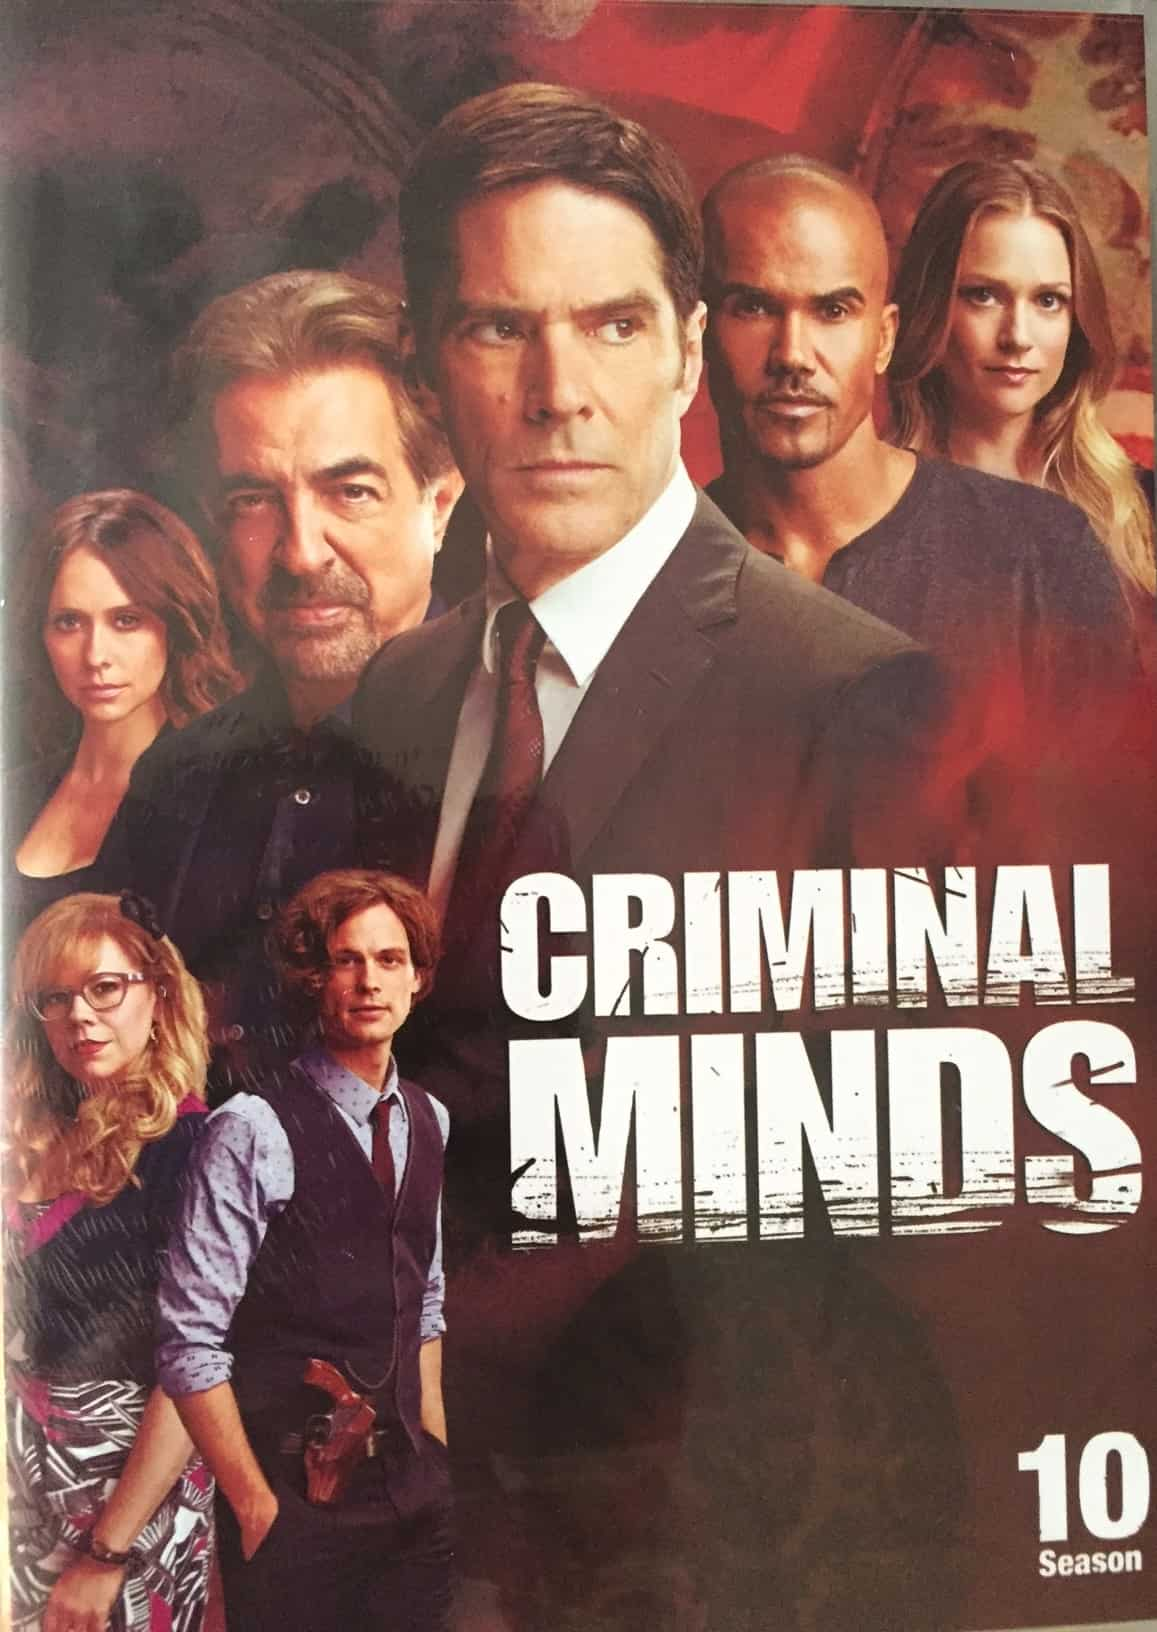 'Criminal Minds' Season 10 on DVD